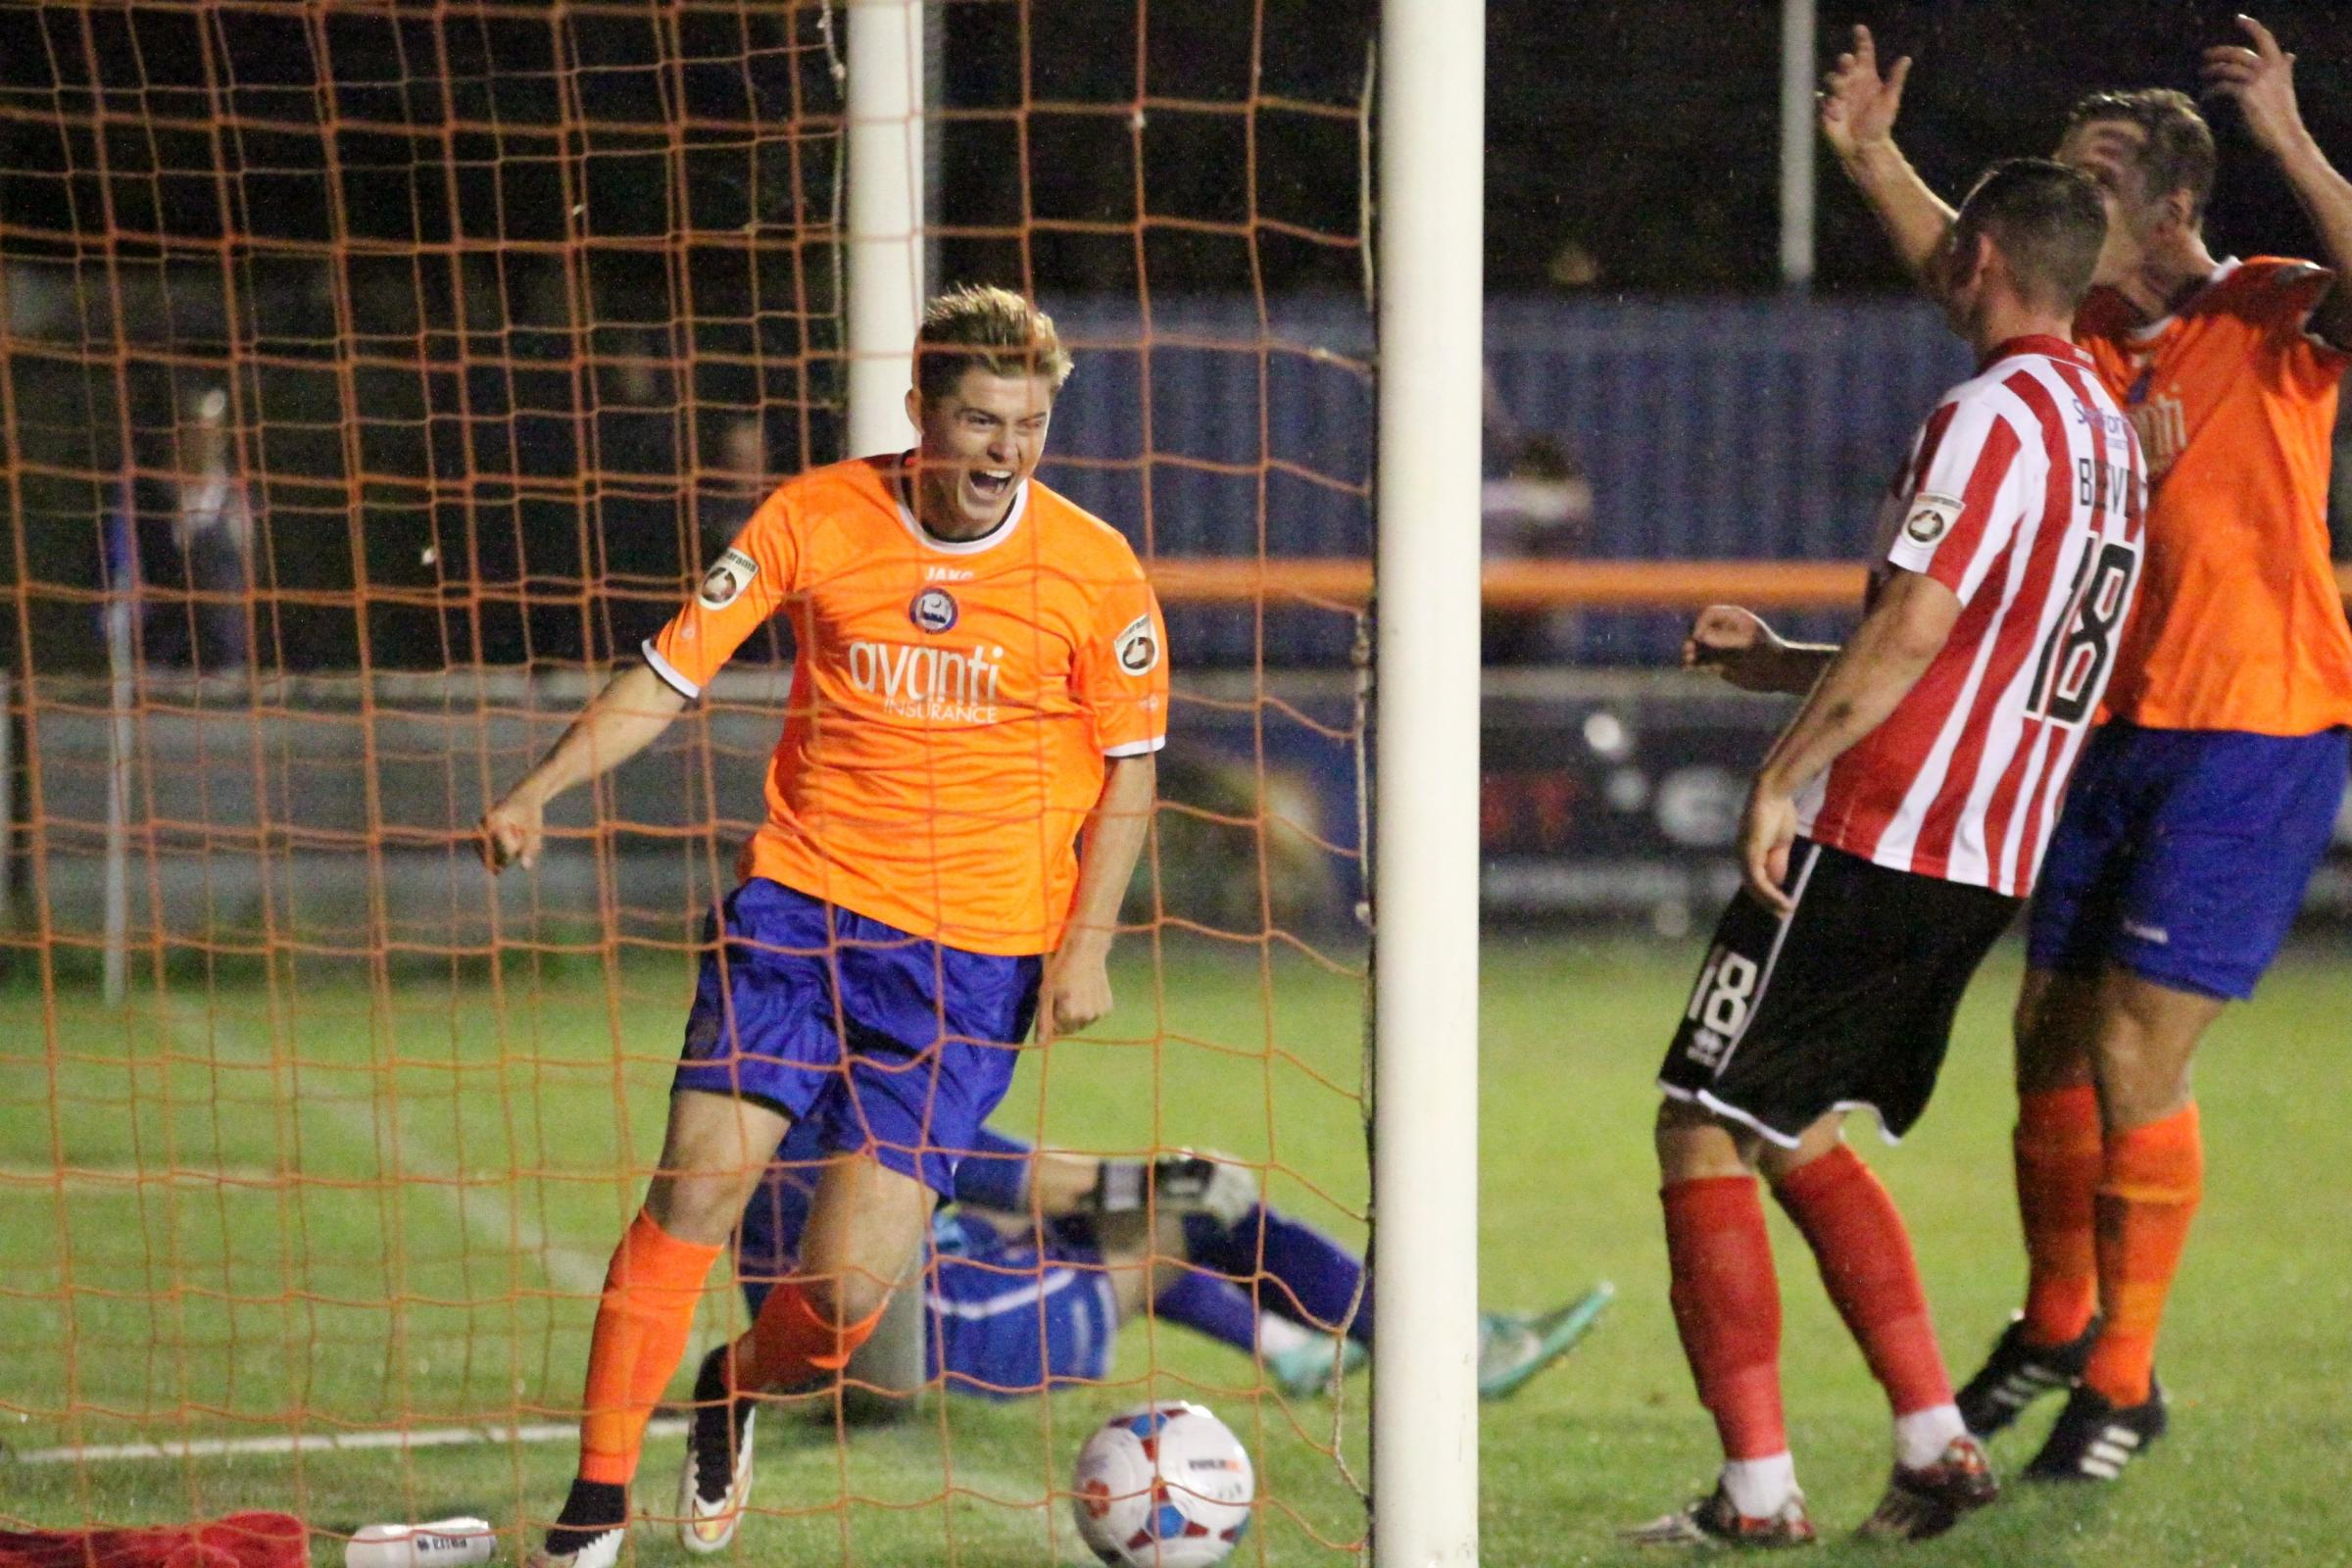 Match winner - Taylor Miles, pictured playing for Braintree Town Picture: ALAN STUCKEY